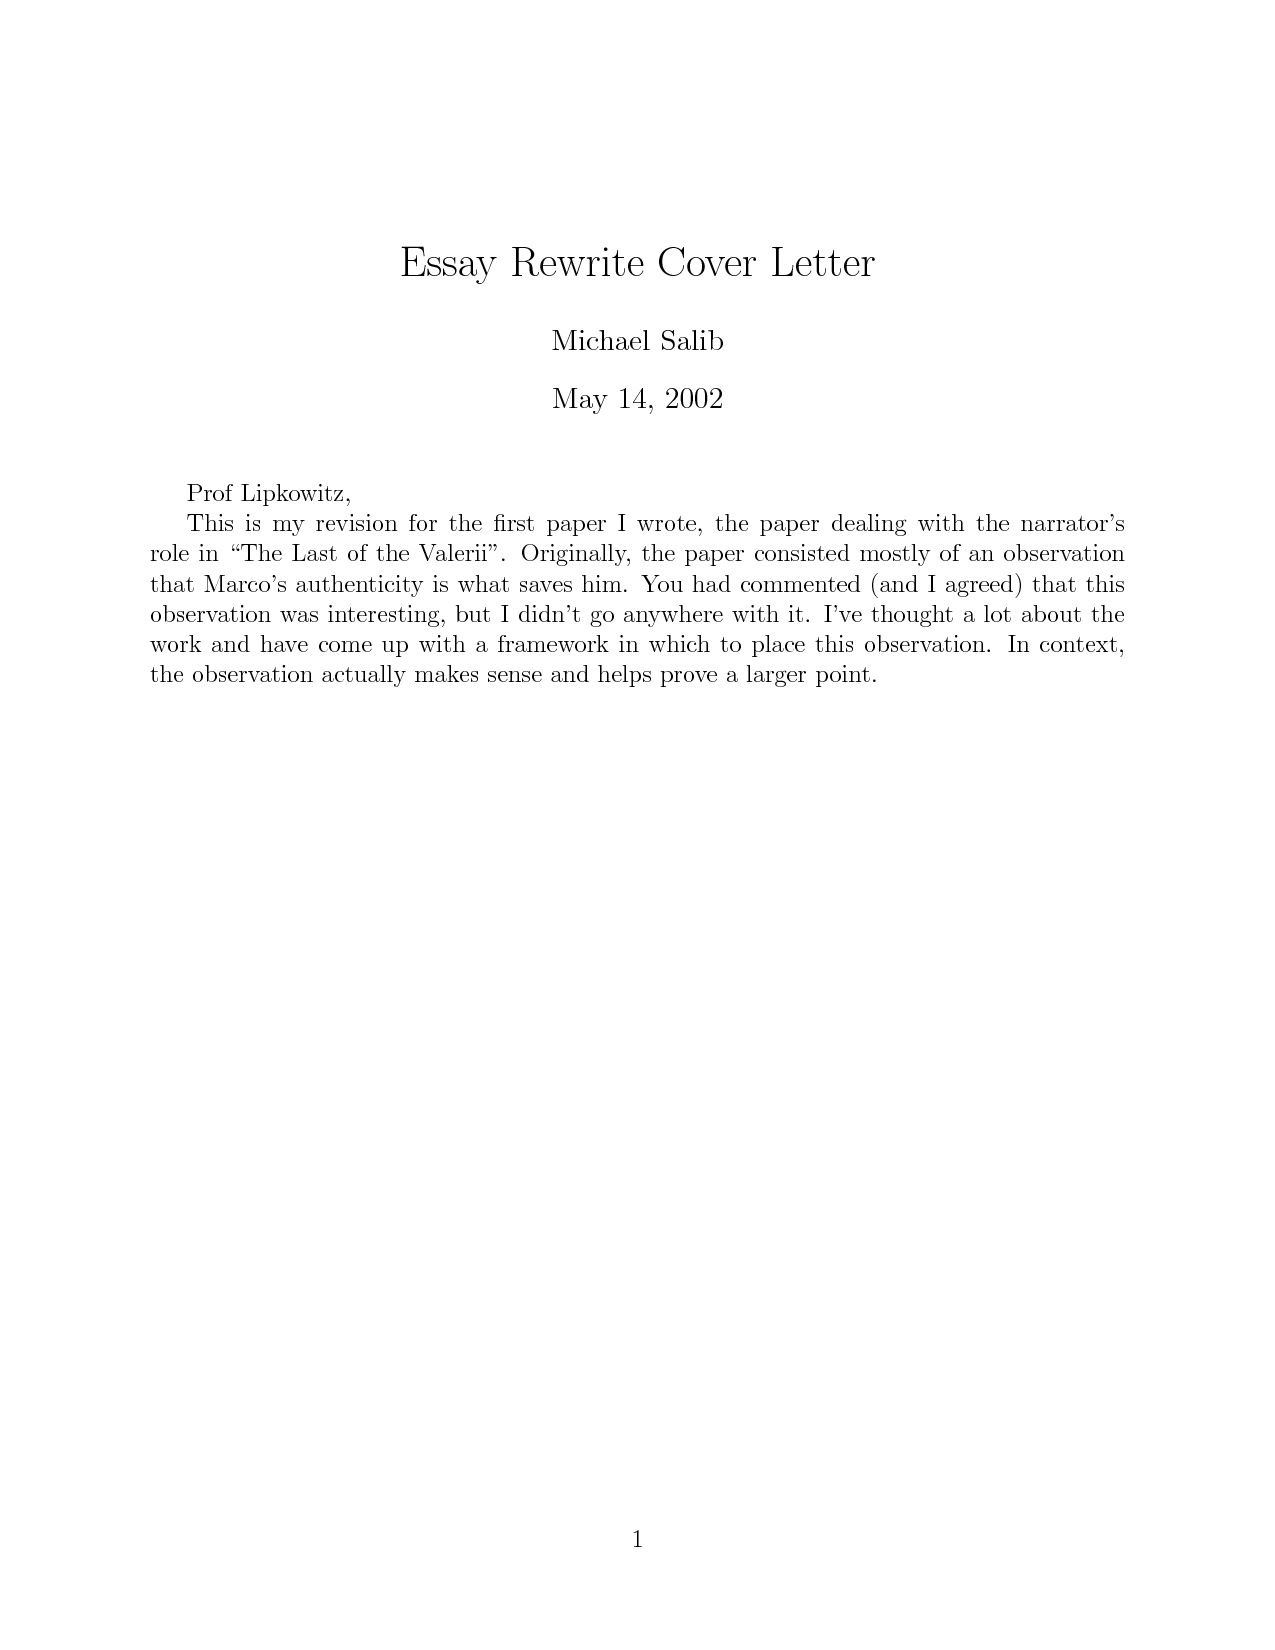 Cover letter for essays